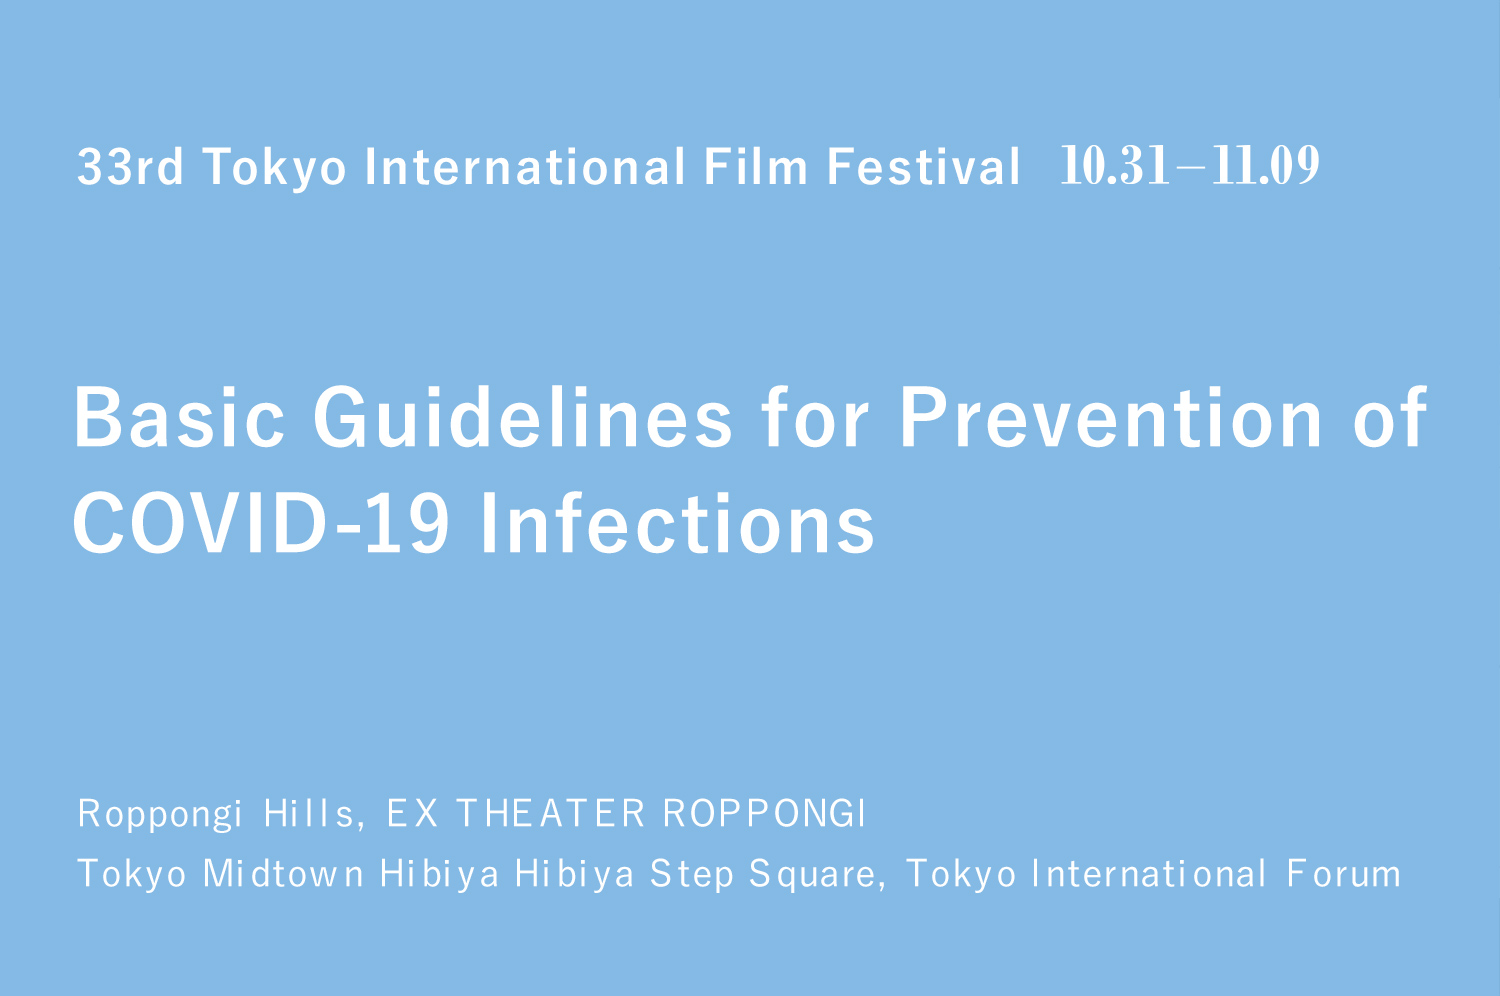 Basic Guidelines for Prevention of COVID-19 Infections